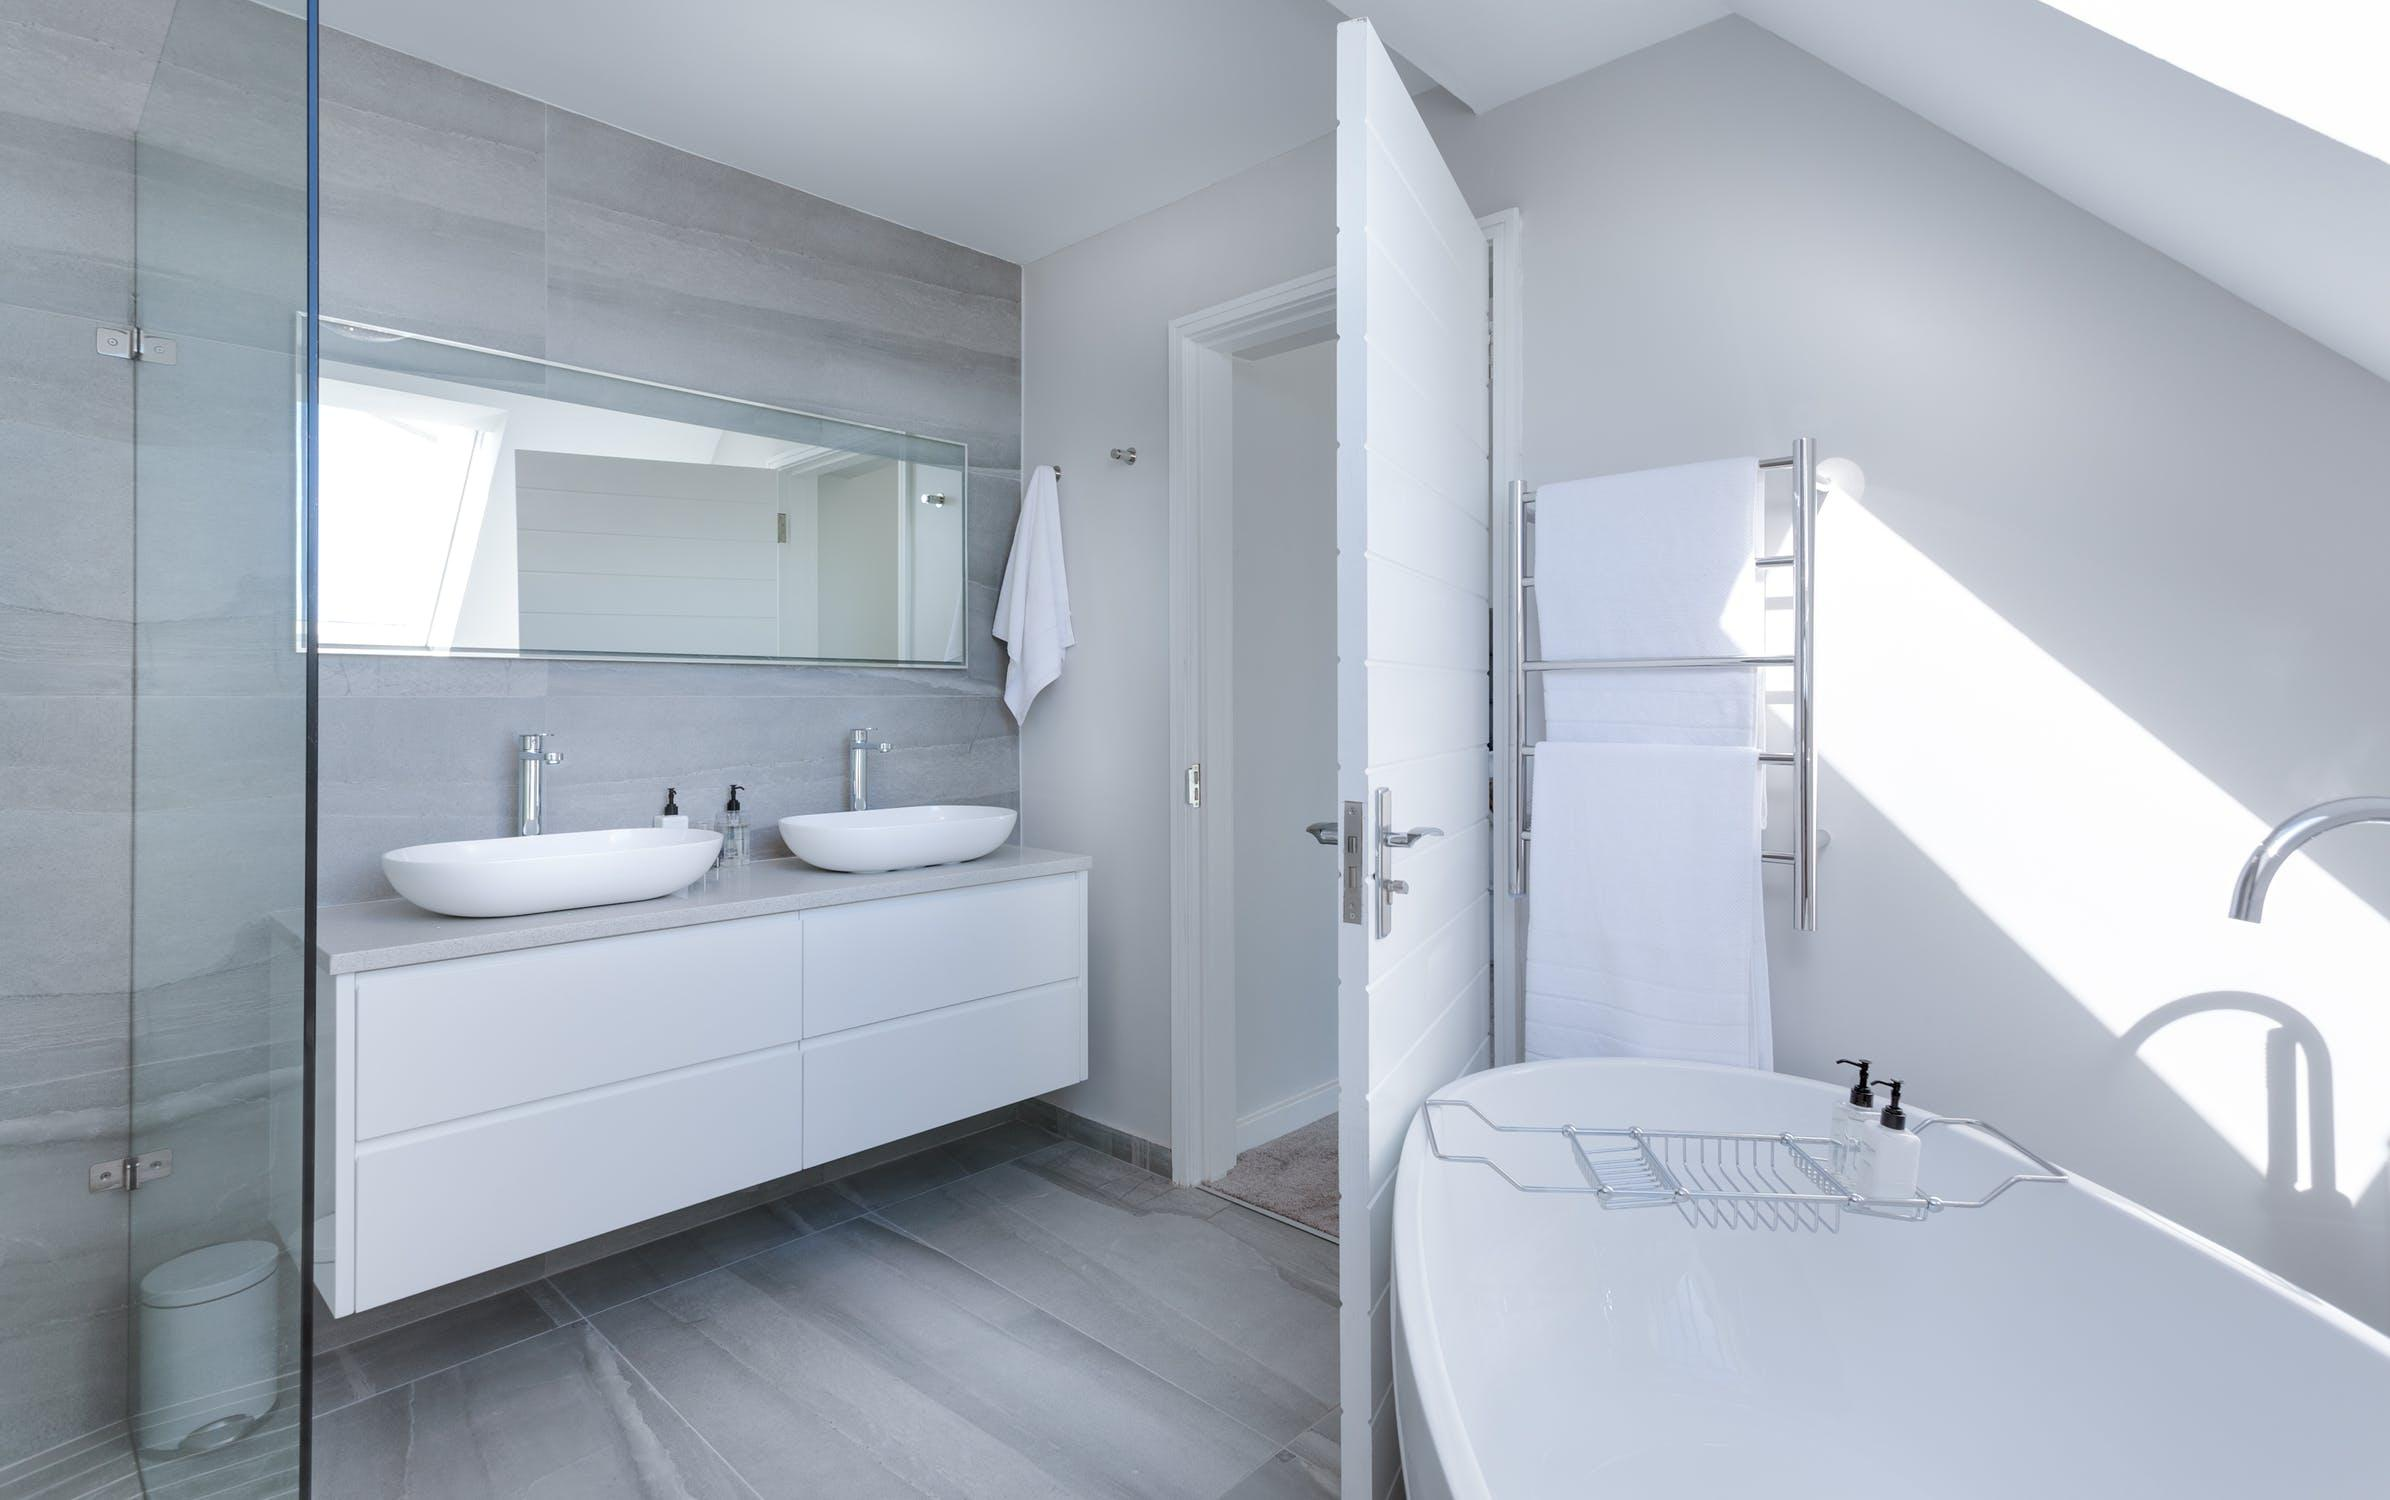 5 Best Trends in Bathroom Design and Features For 2019